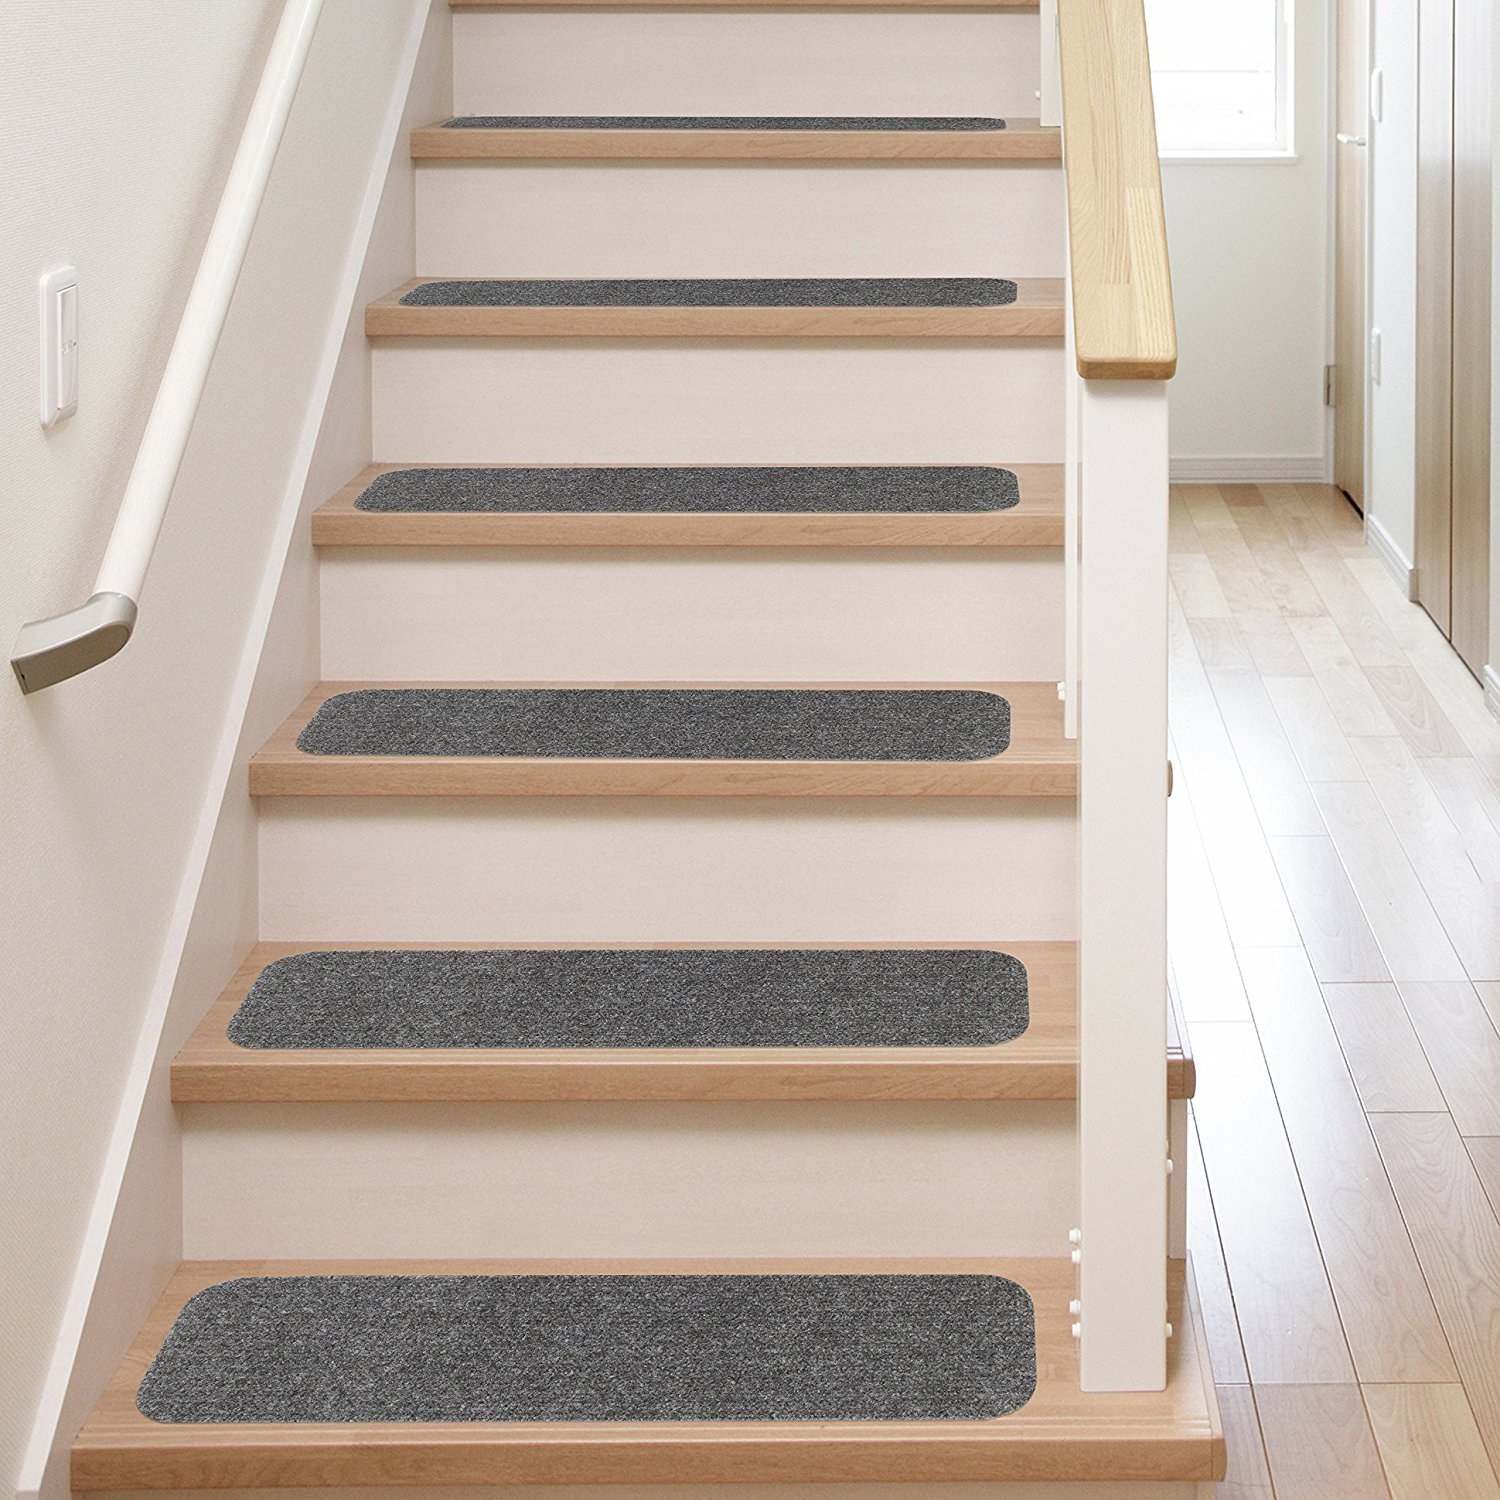 13 Stair Treads Non Slip Carpet Pads Easy Tape Installation Within Stairway Carpet Treads (#1 of 20)